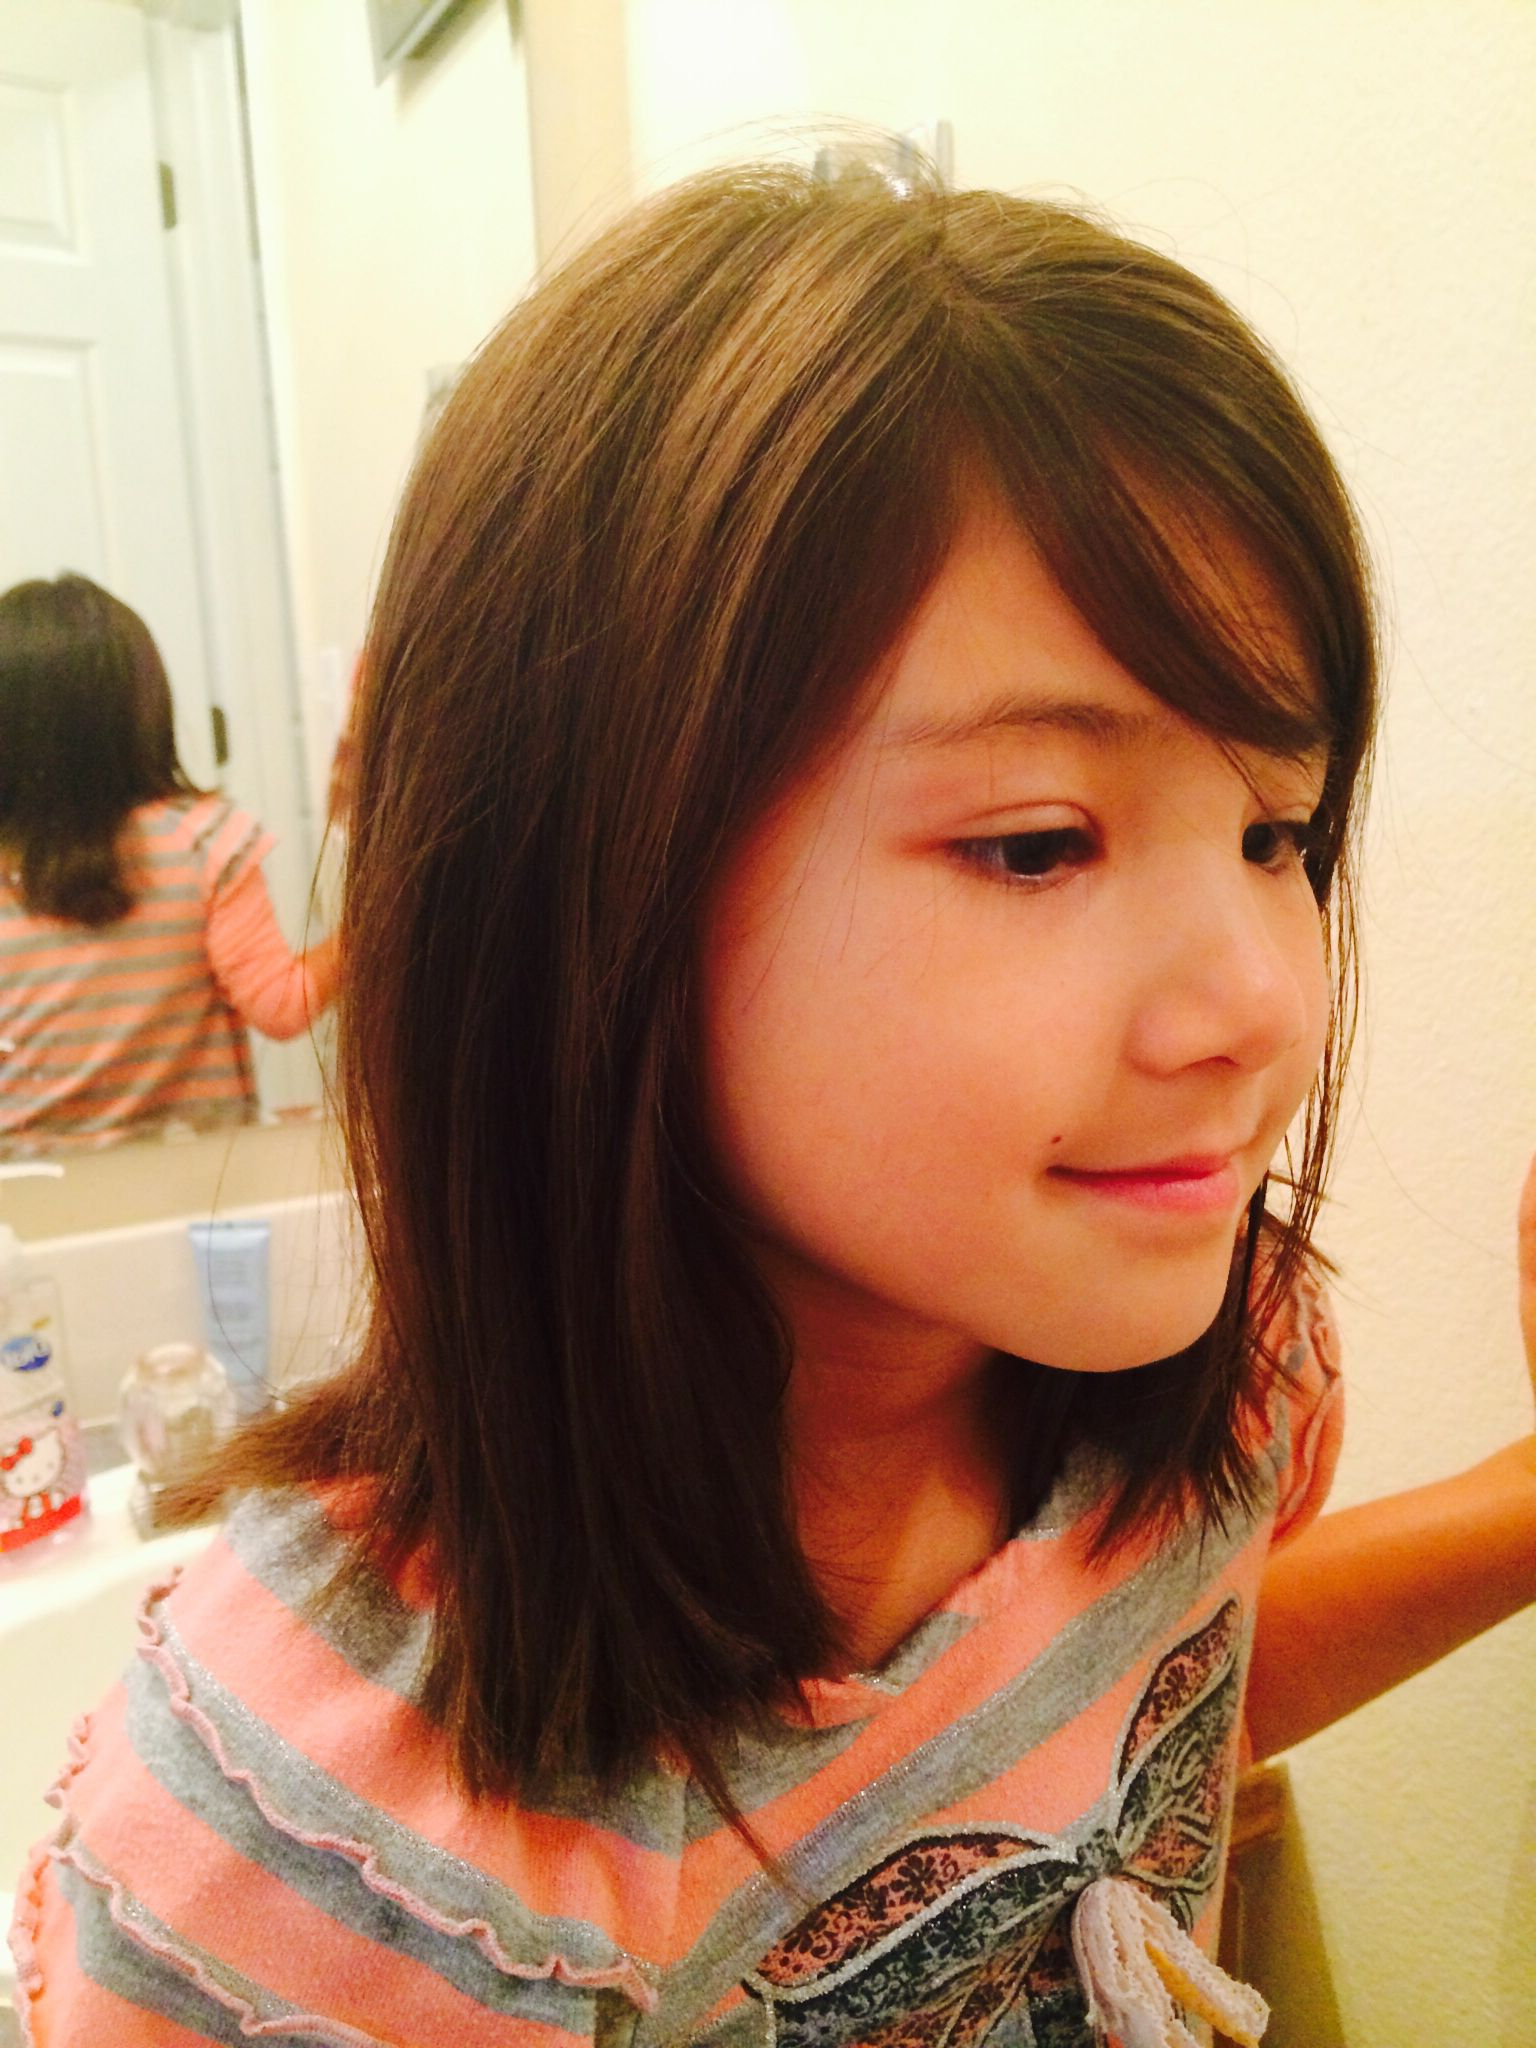 Hairstyles For Little Girls Intended For Well Known Kids Medium Haircuts With Bangs (View 2 of 20)